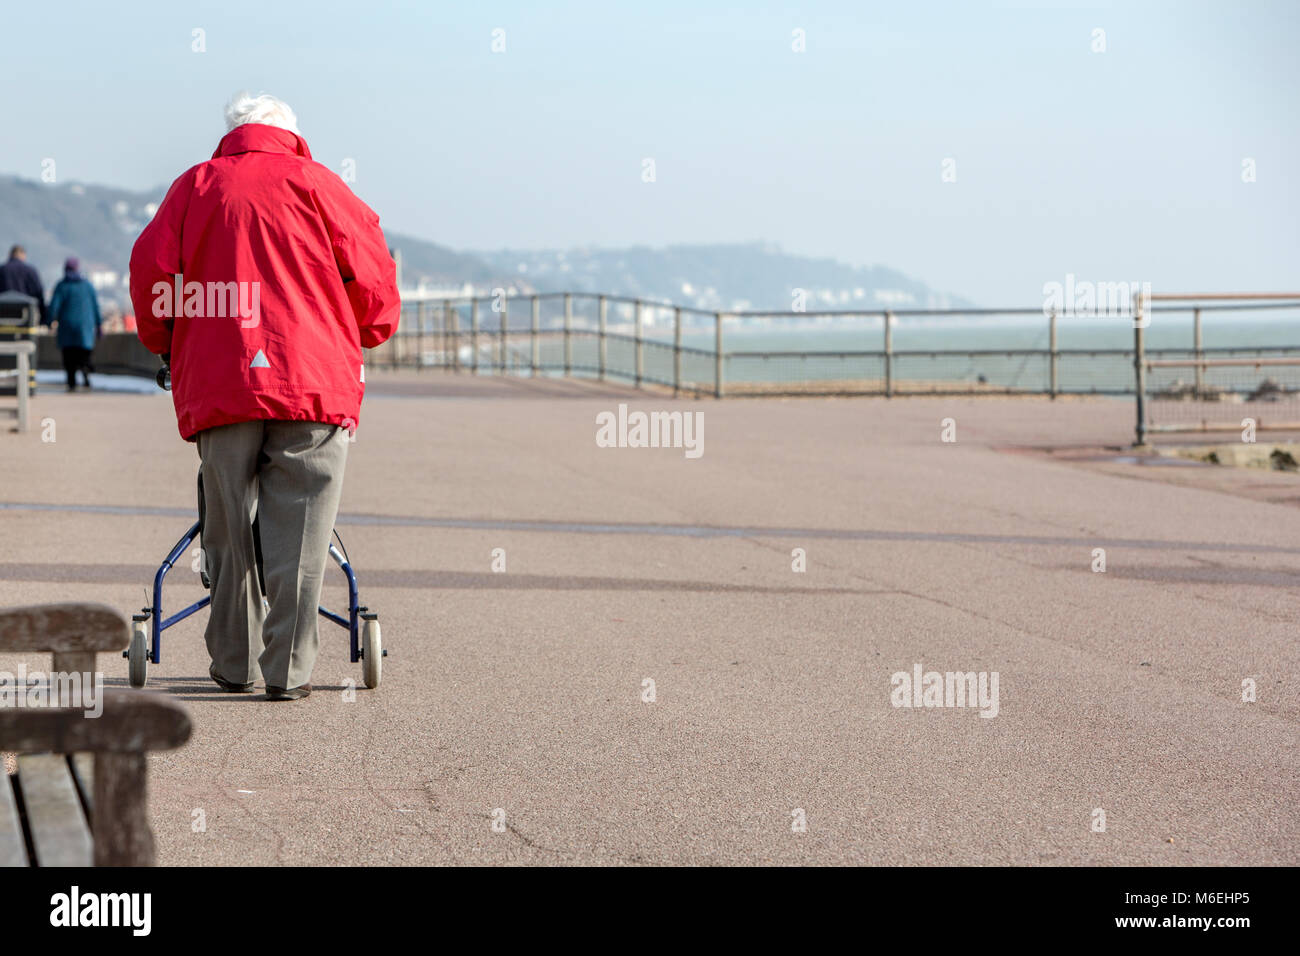 An old man with a walking aid on a seafront walk - Stock Image